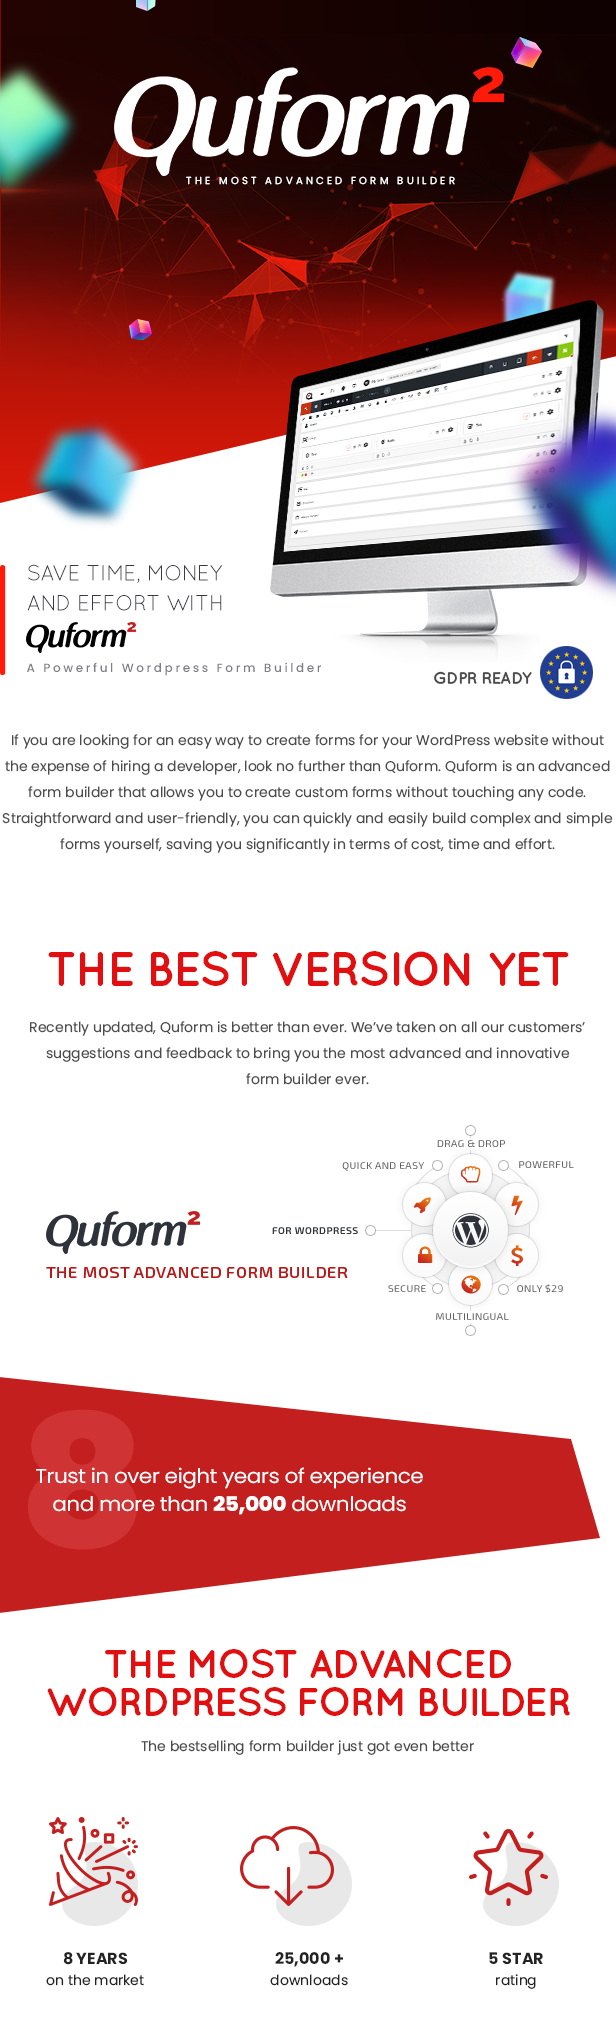 Quform 2 features intro